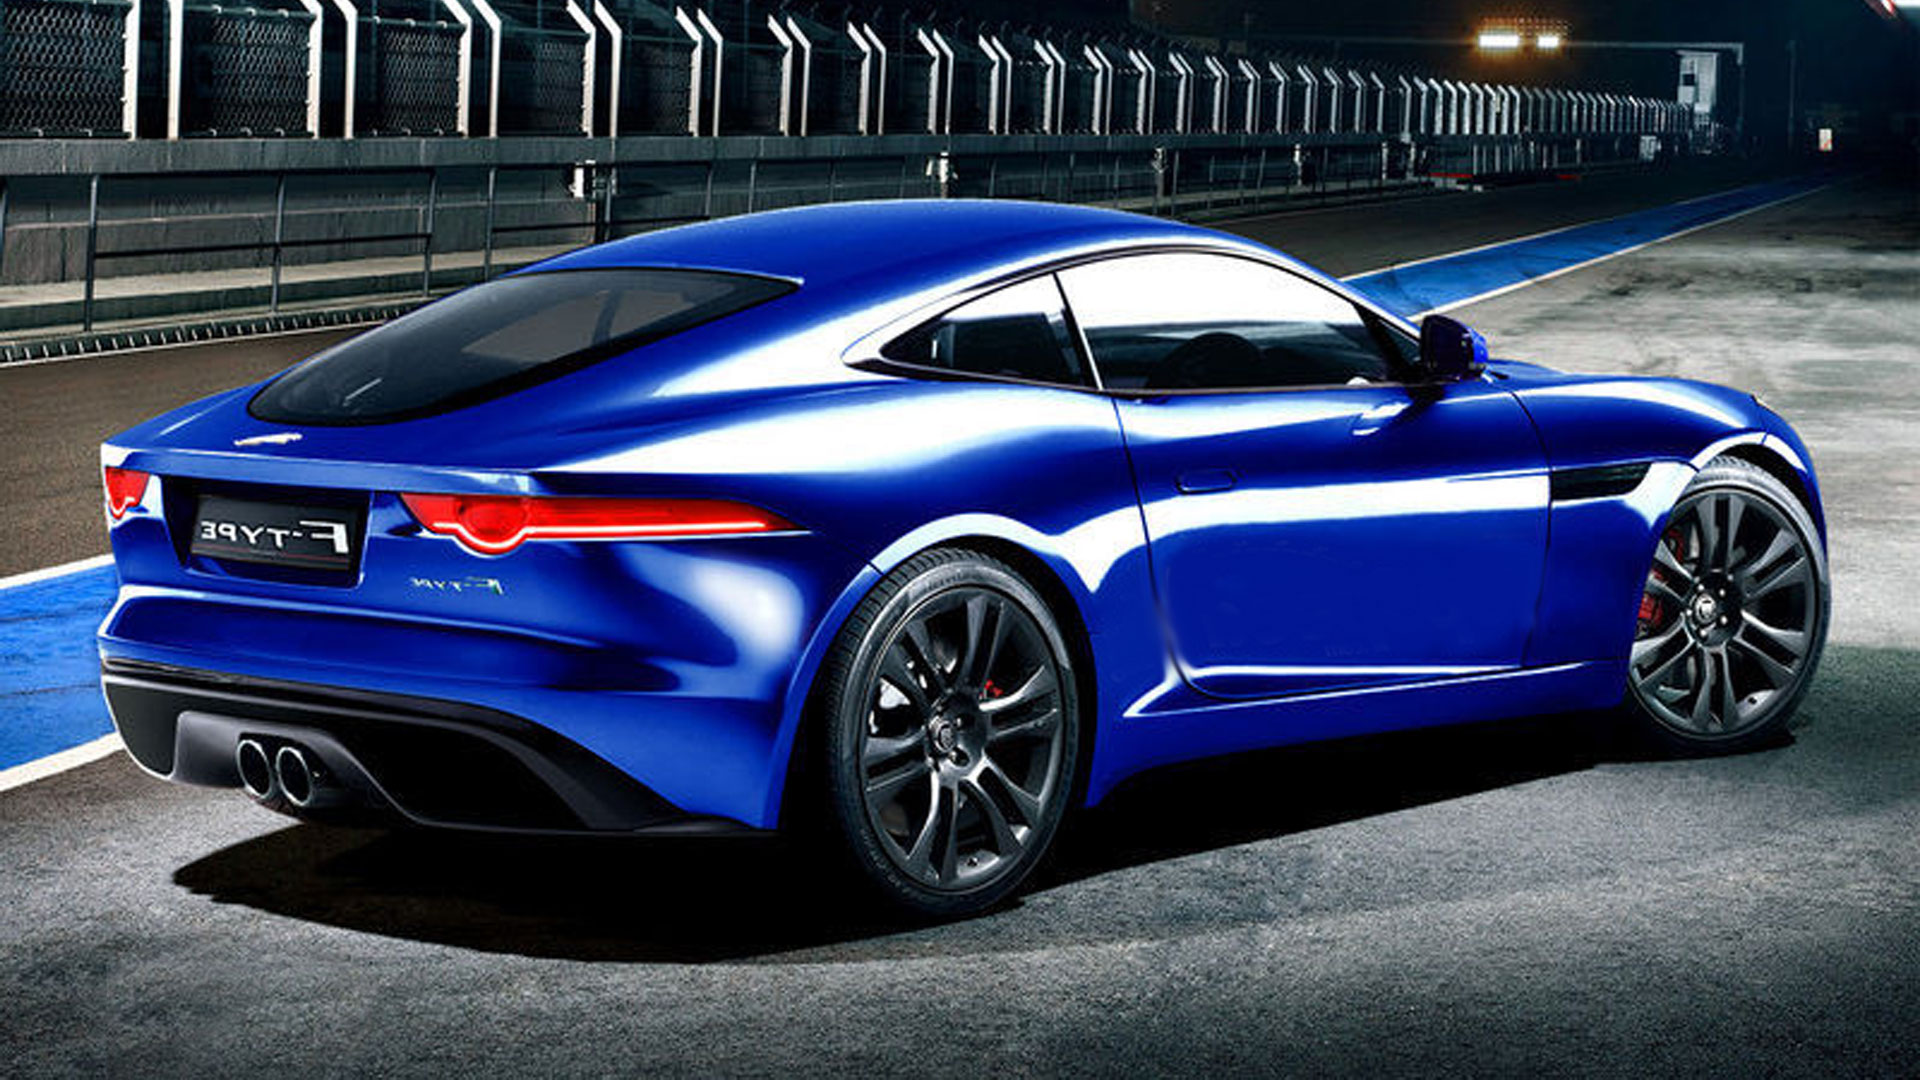 2014 Jaguar F Type   Wallpapers Pictures Images Photos Desktop 1920x1080